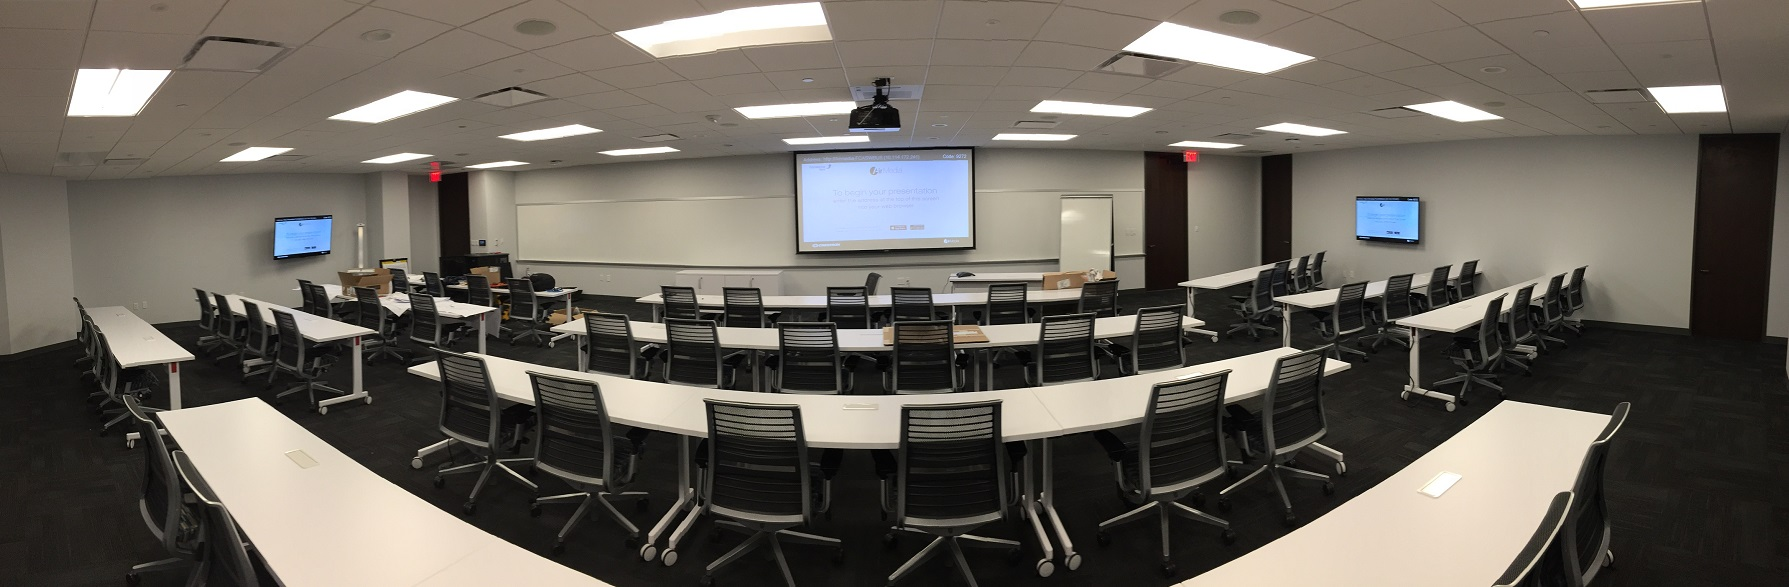 Projection display in a classroom-training room